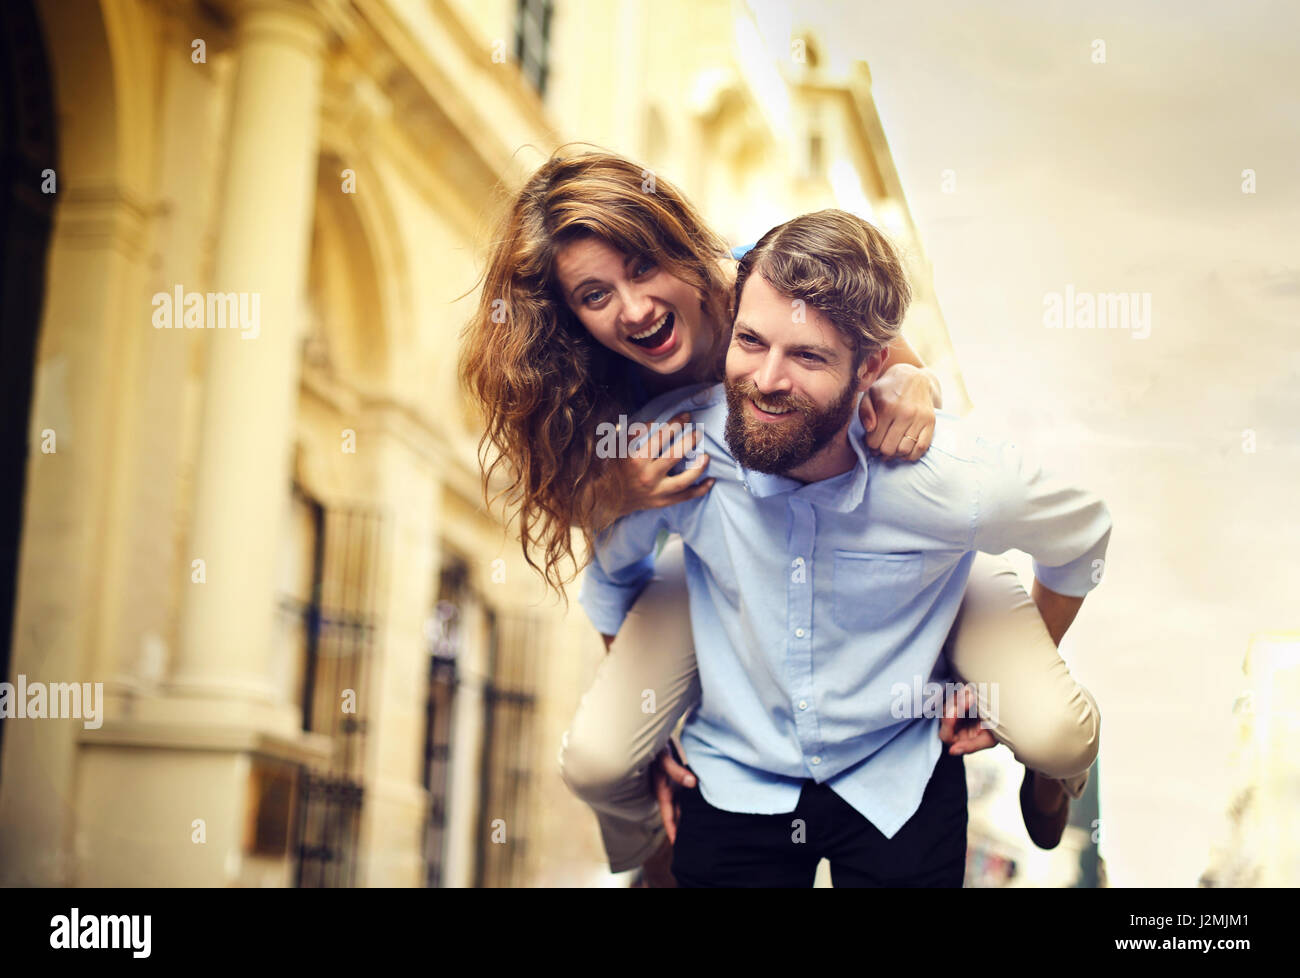 Man giving woman a piggyback - Stock Image